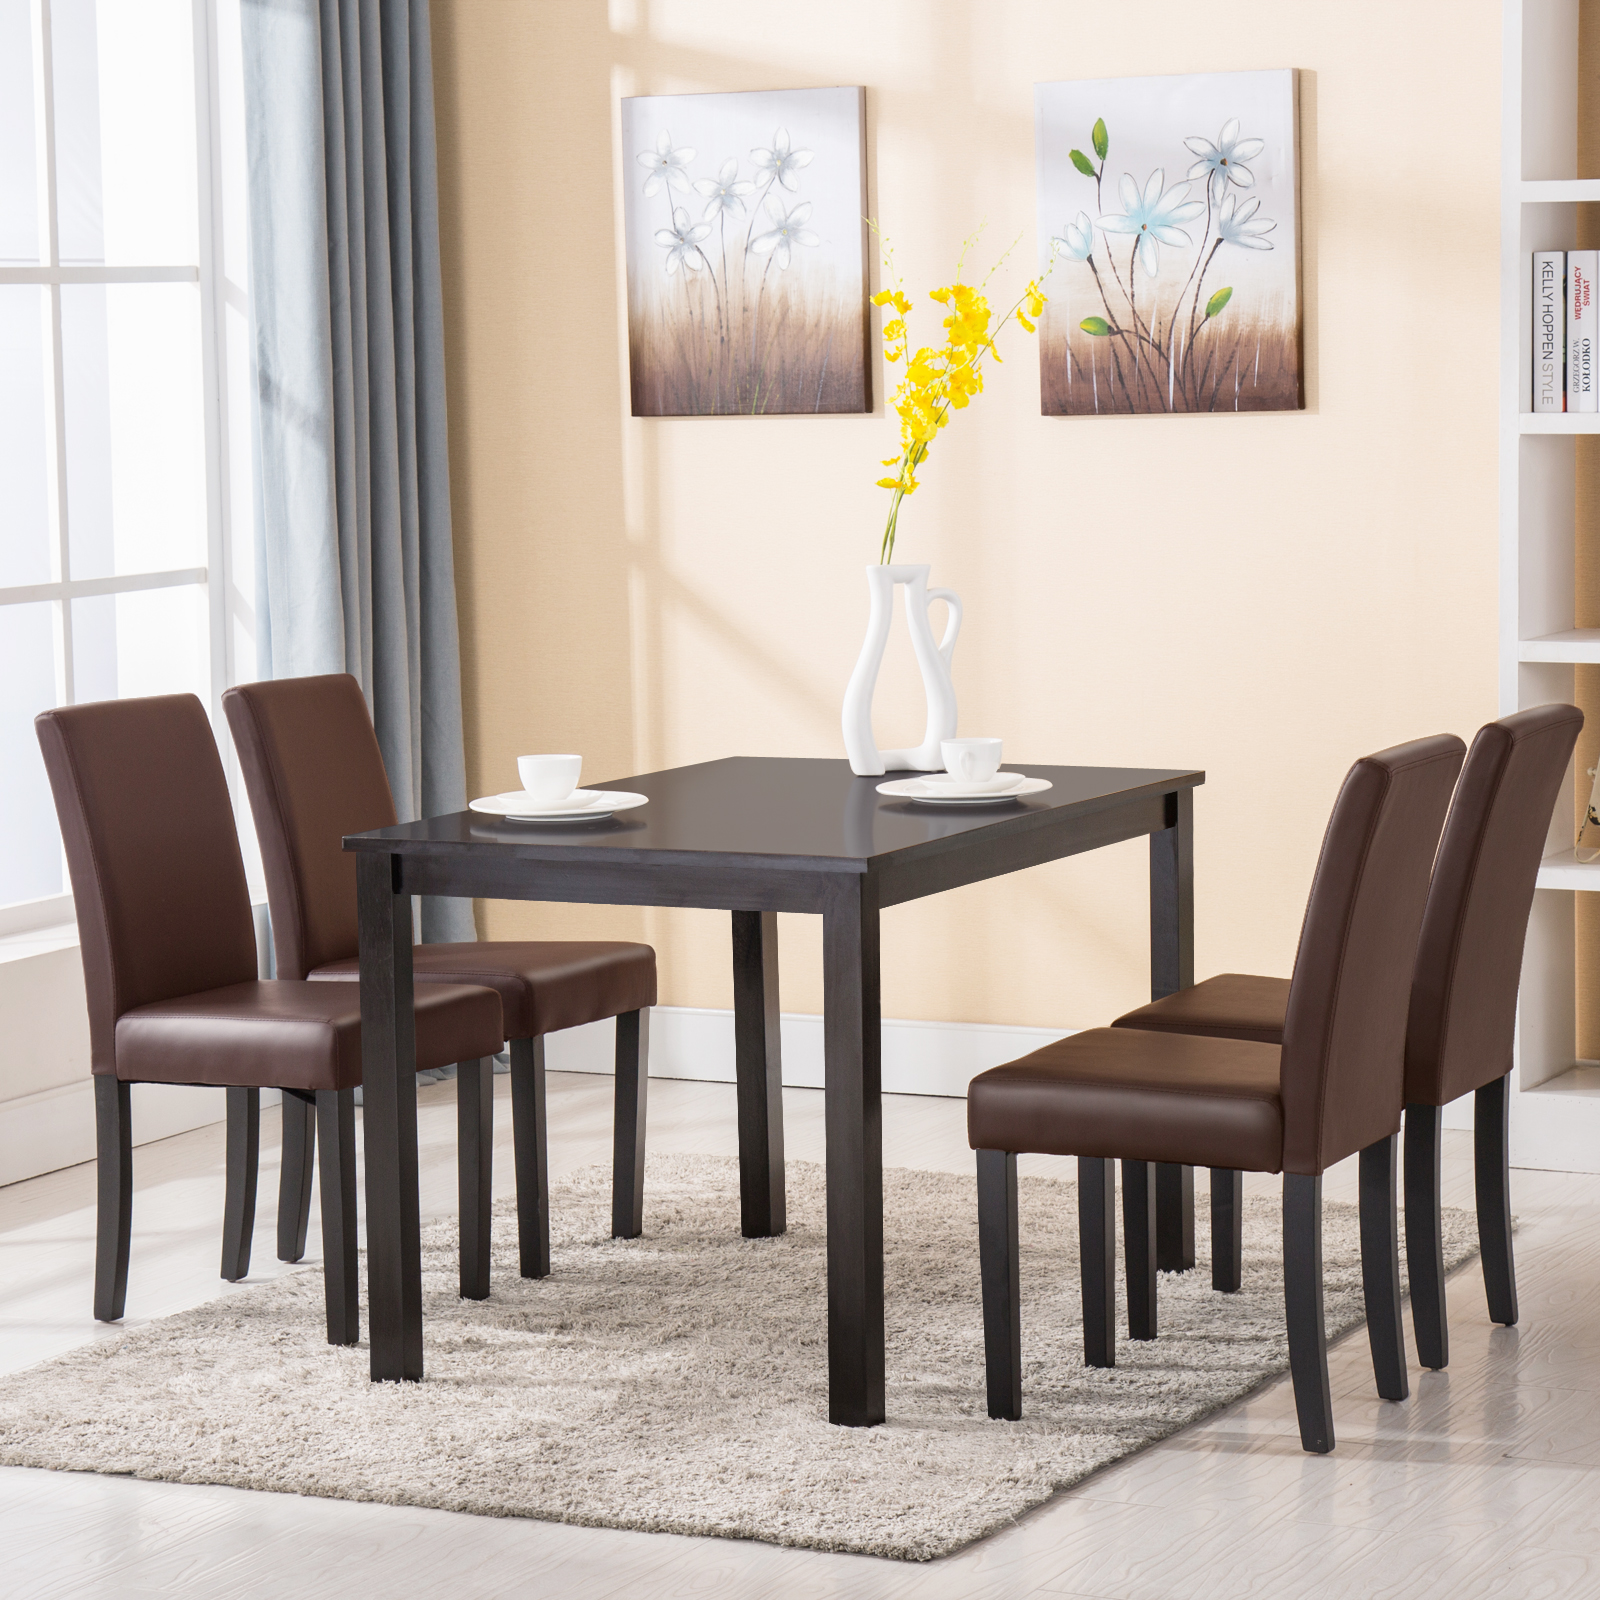 4 Chairs In Dining Room: 5 Piece Wood Dining Table Set 4 Chairs Kitchen Dinette